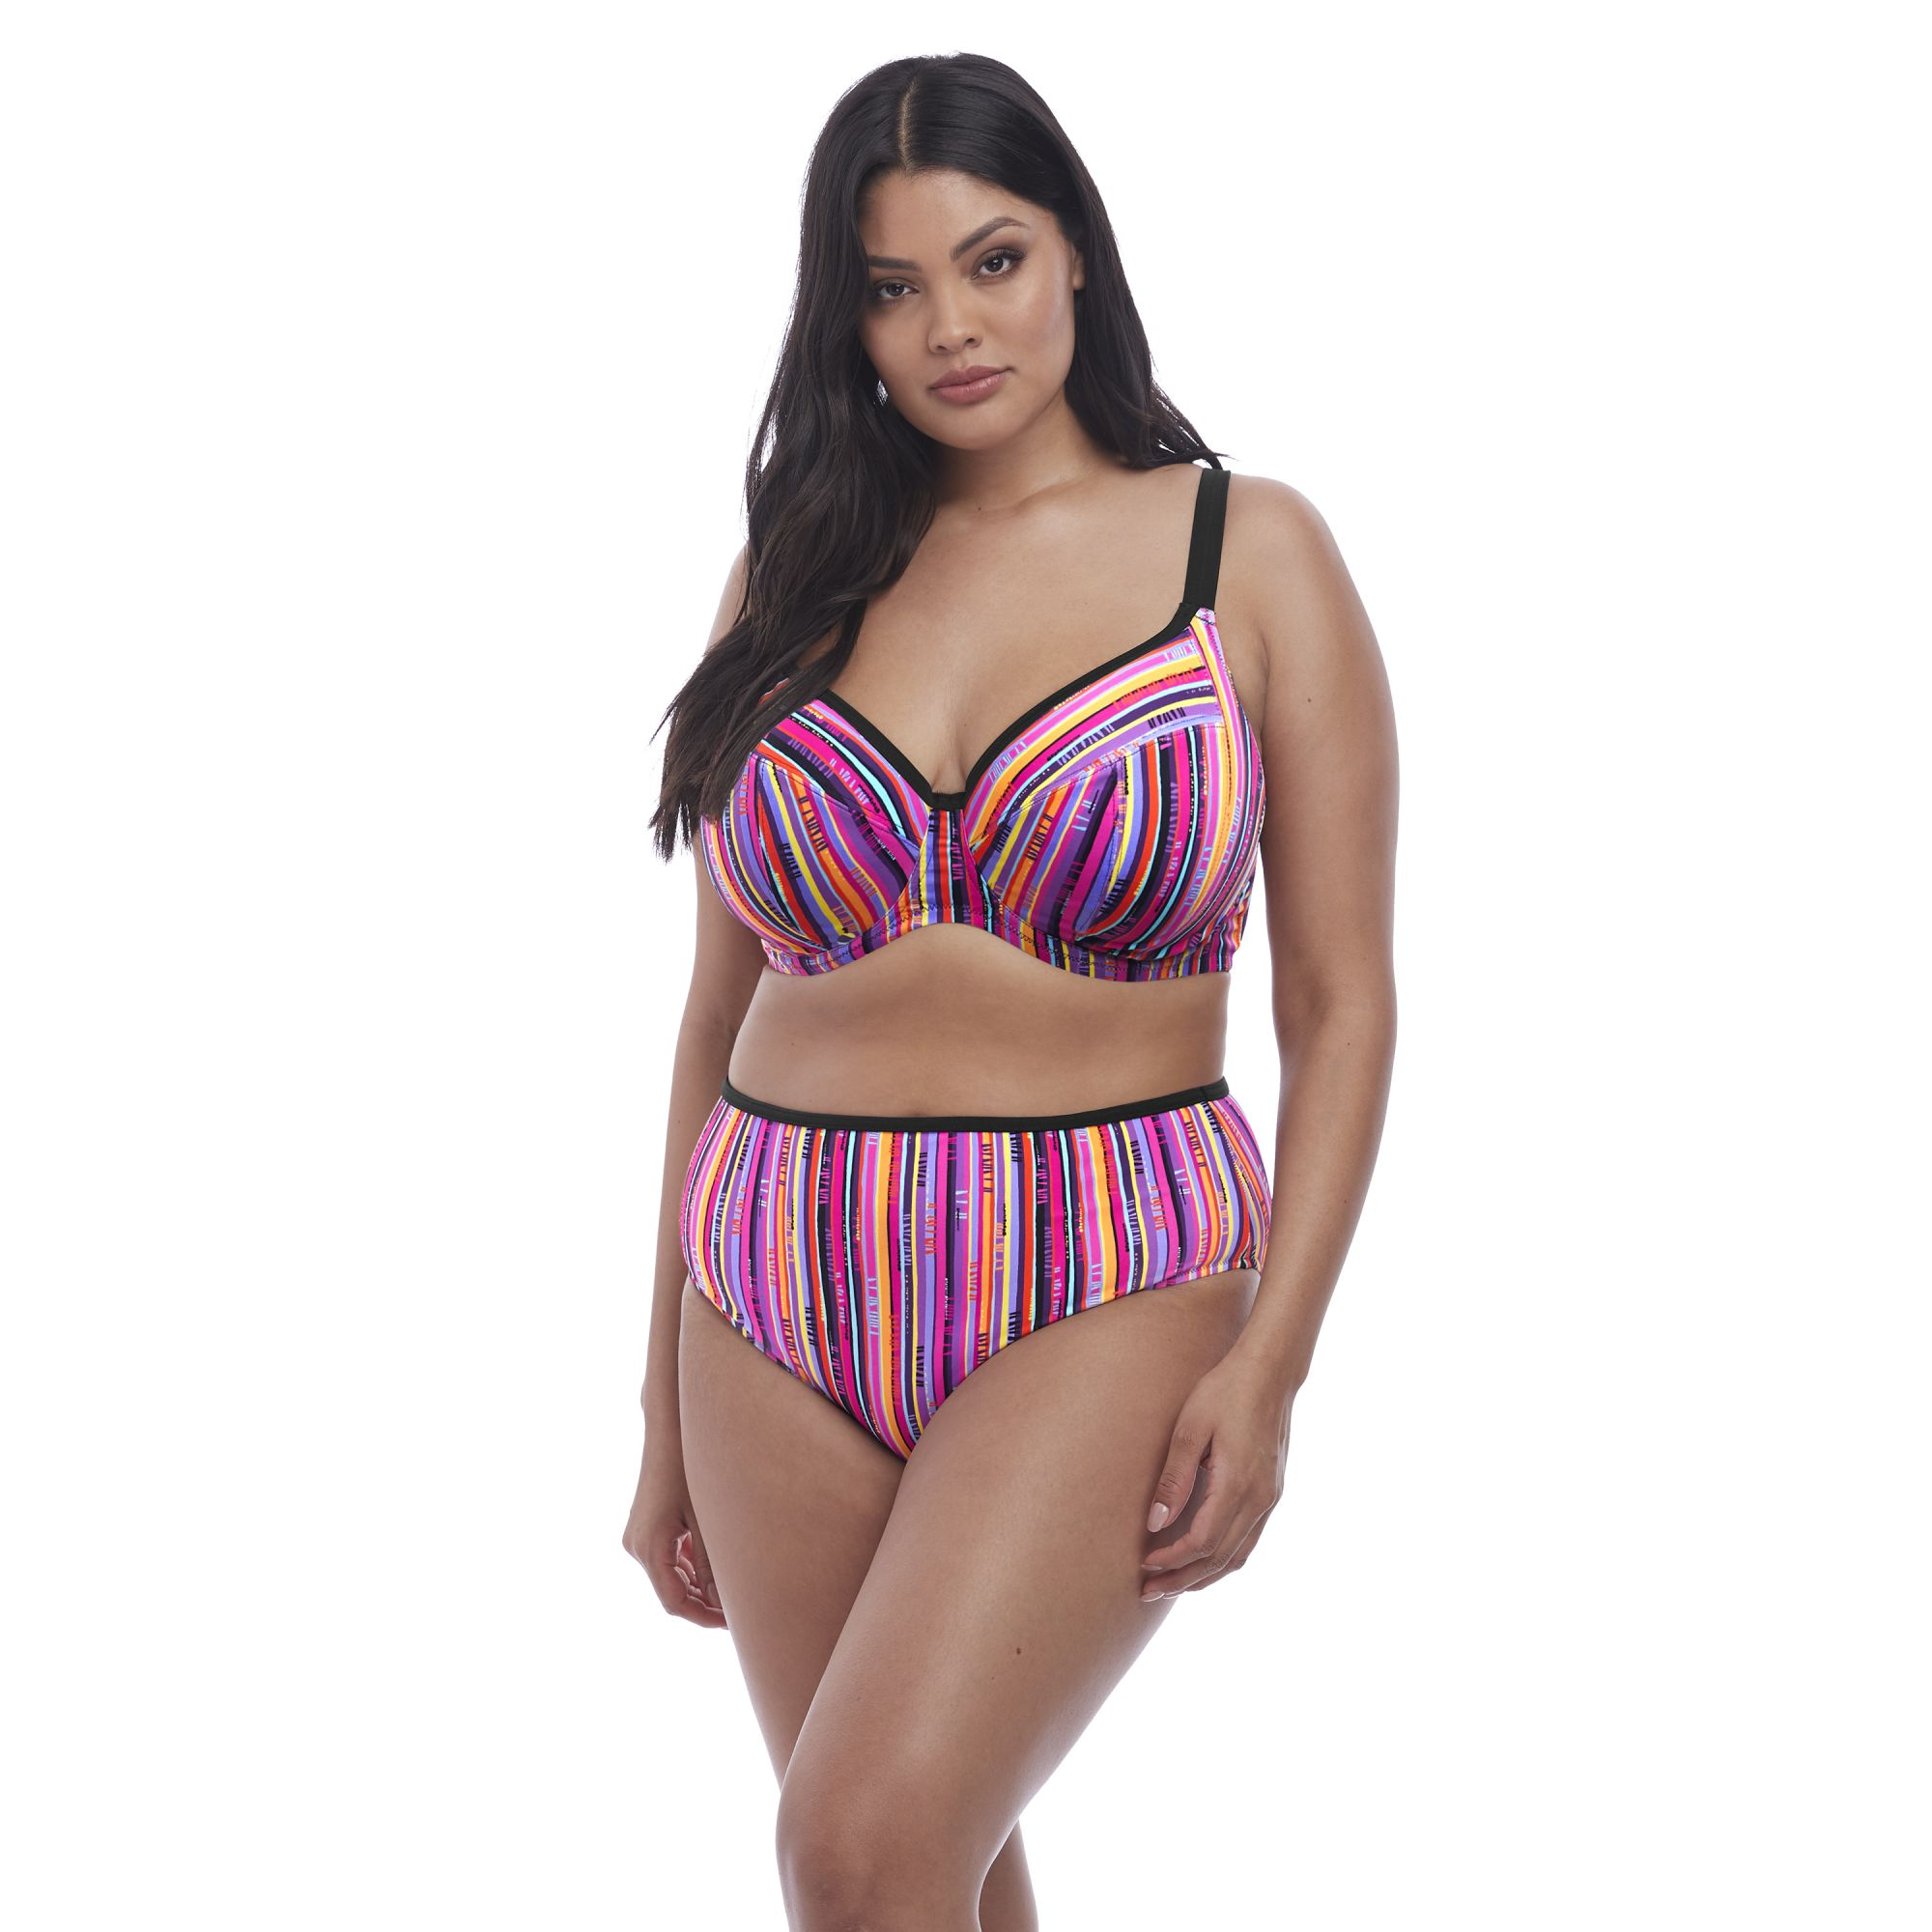 NOMAD-MULTI-UW-PLUNGE-BIKINI-TOP-PRINTED-ES7182-MID-RISE-BRIEF-ES7185-F1-TRADE-3000-AW19